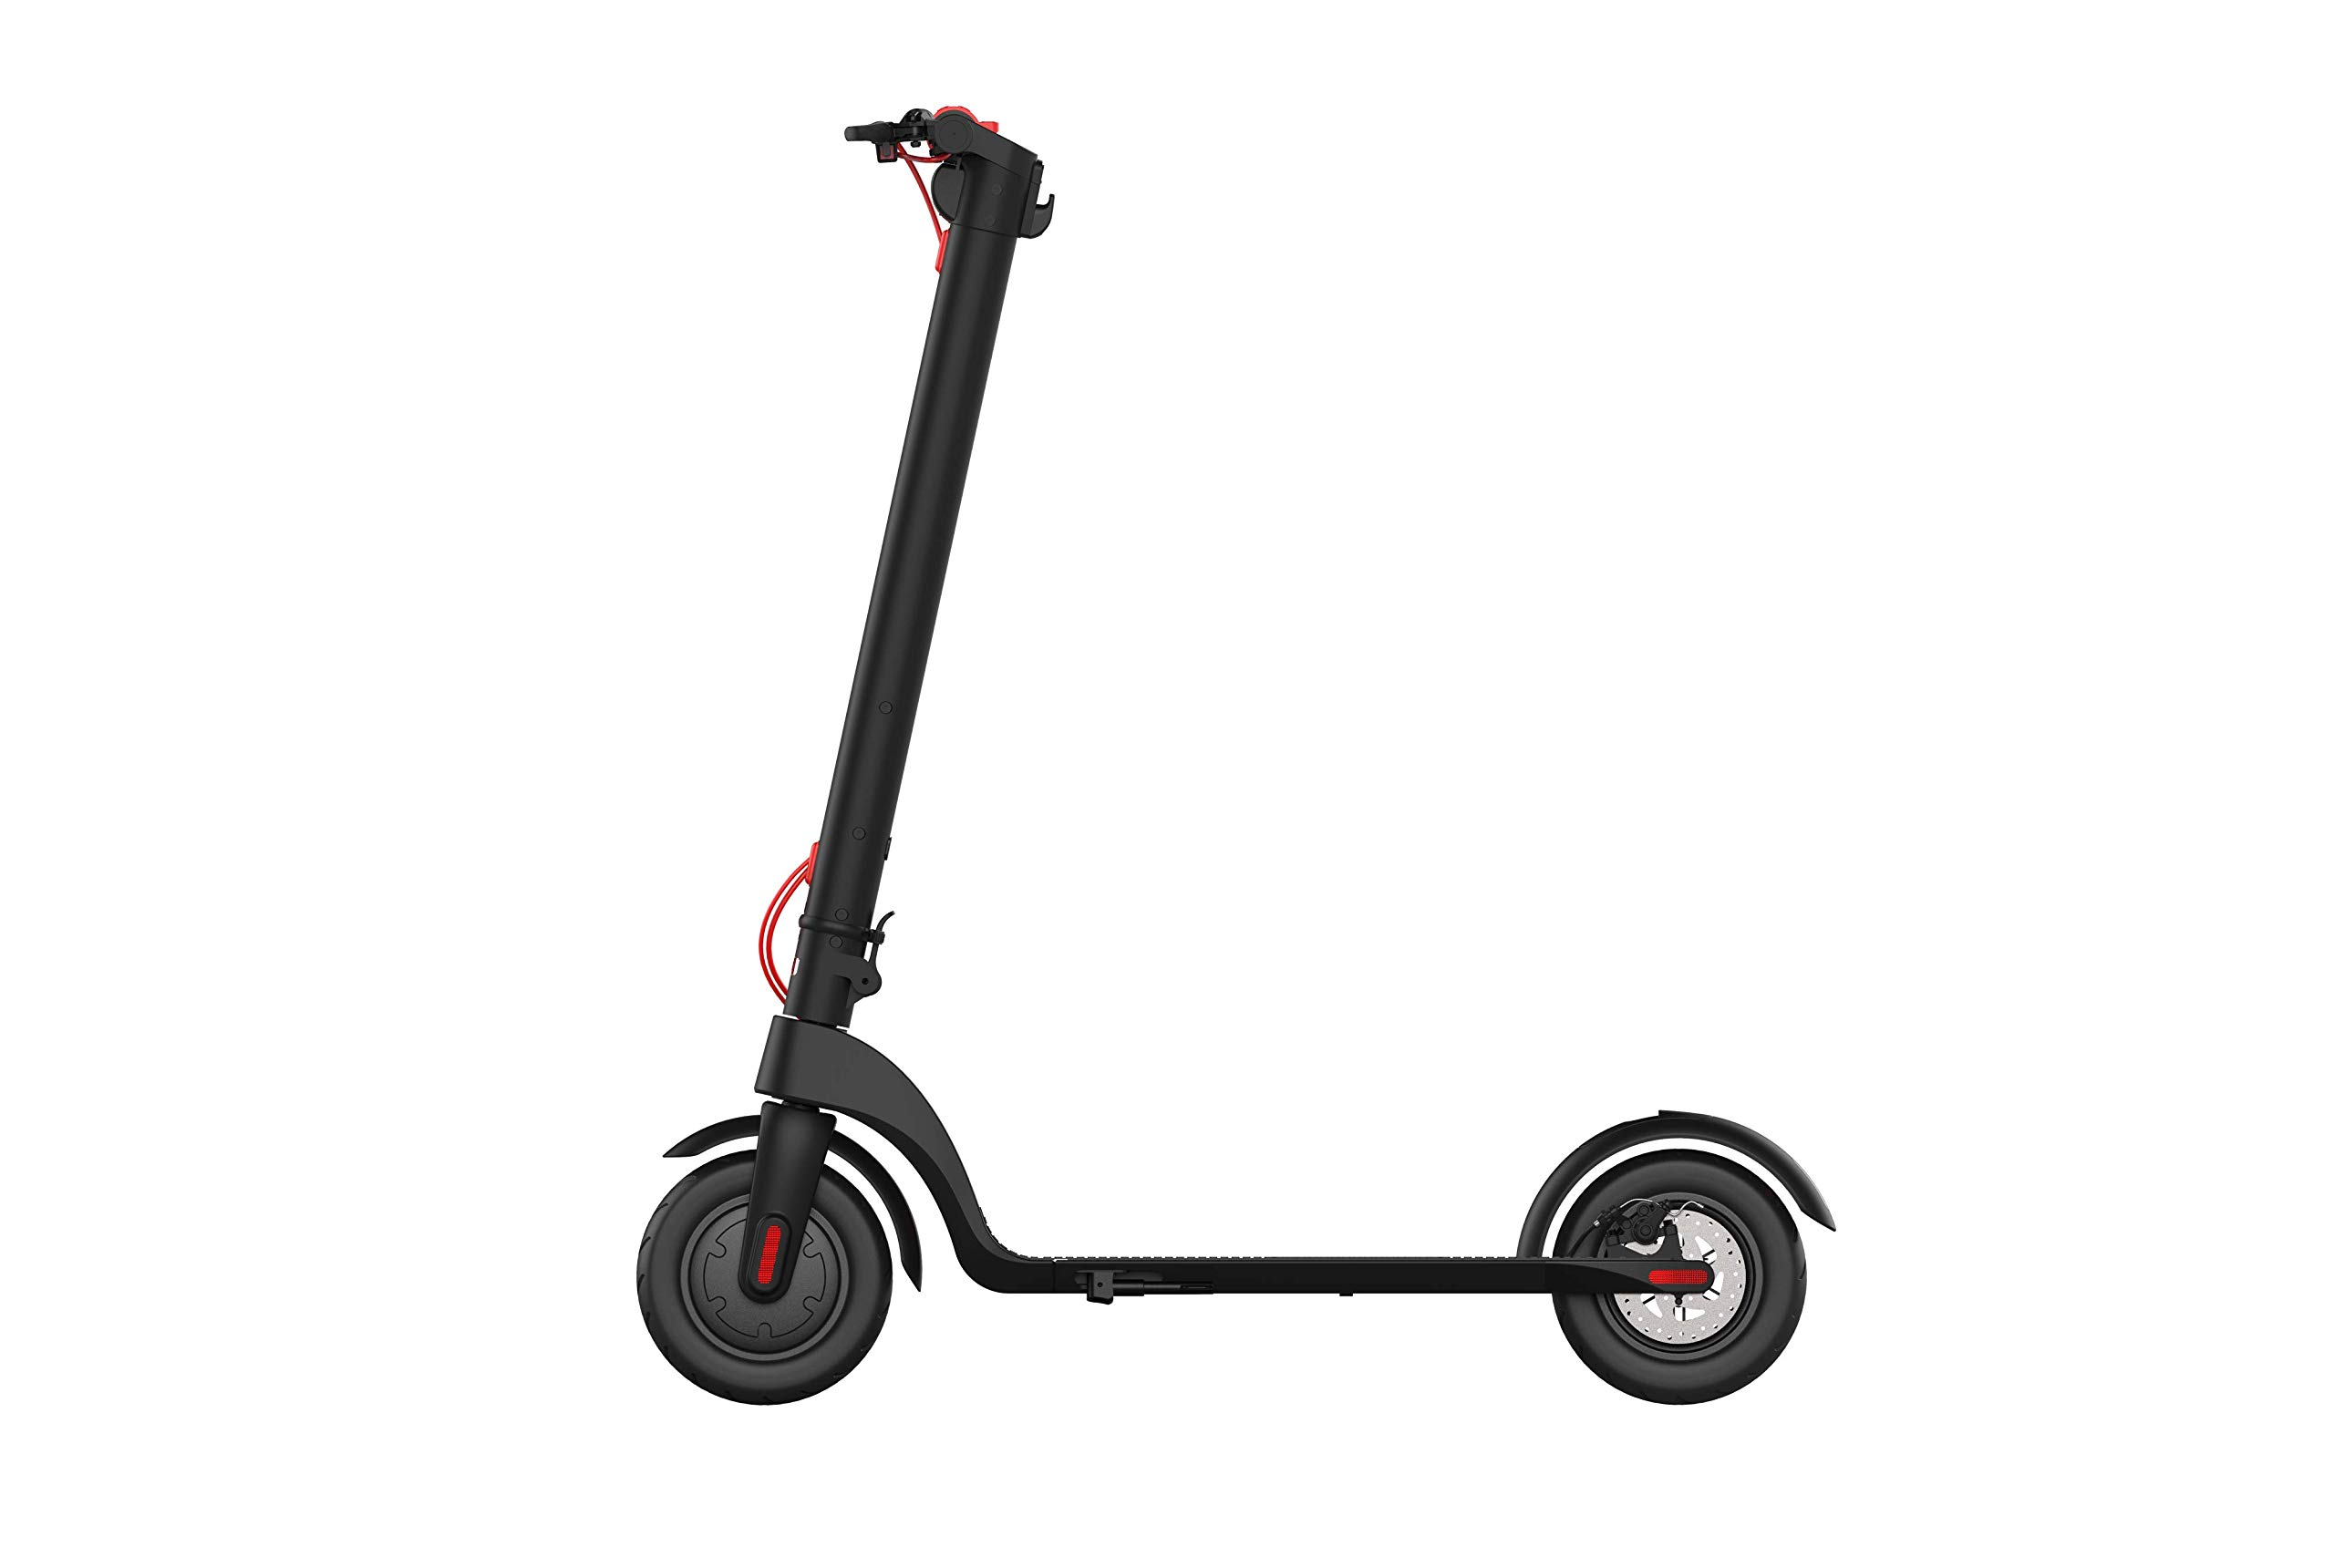 Henoh Electric Scooter, 8.5 inch Tire 20 Miles Long-Range PANASONIC Battery, Up to 22 MPH, Easy Fold and Carry Design, Ultra-Lightweight Aluminum Alloy by Henoh